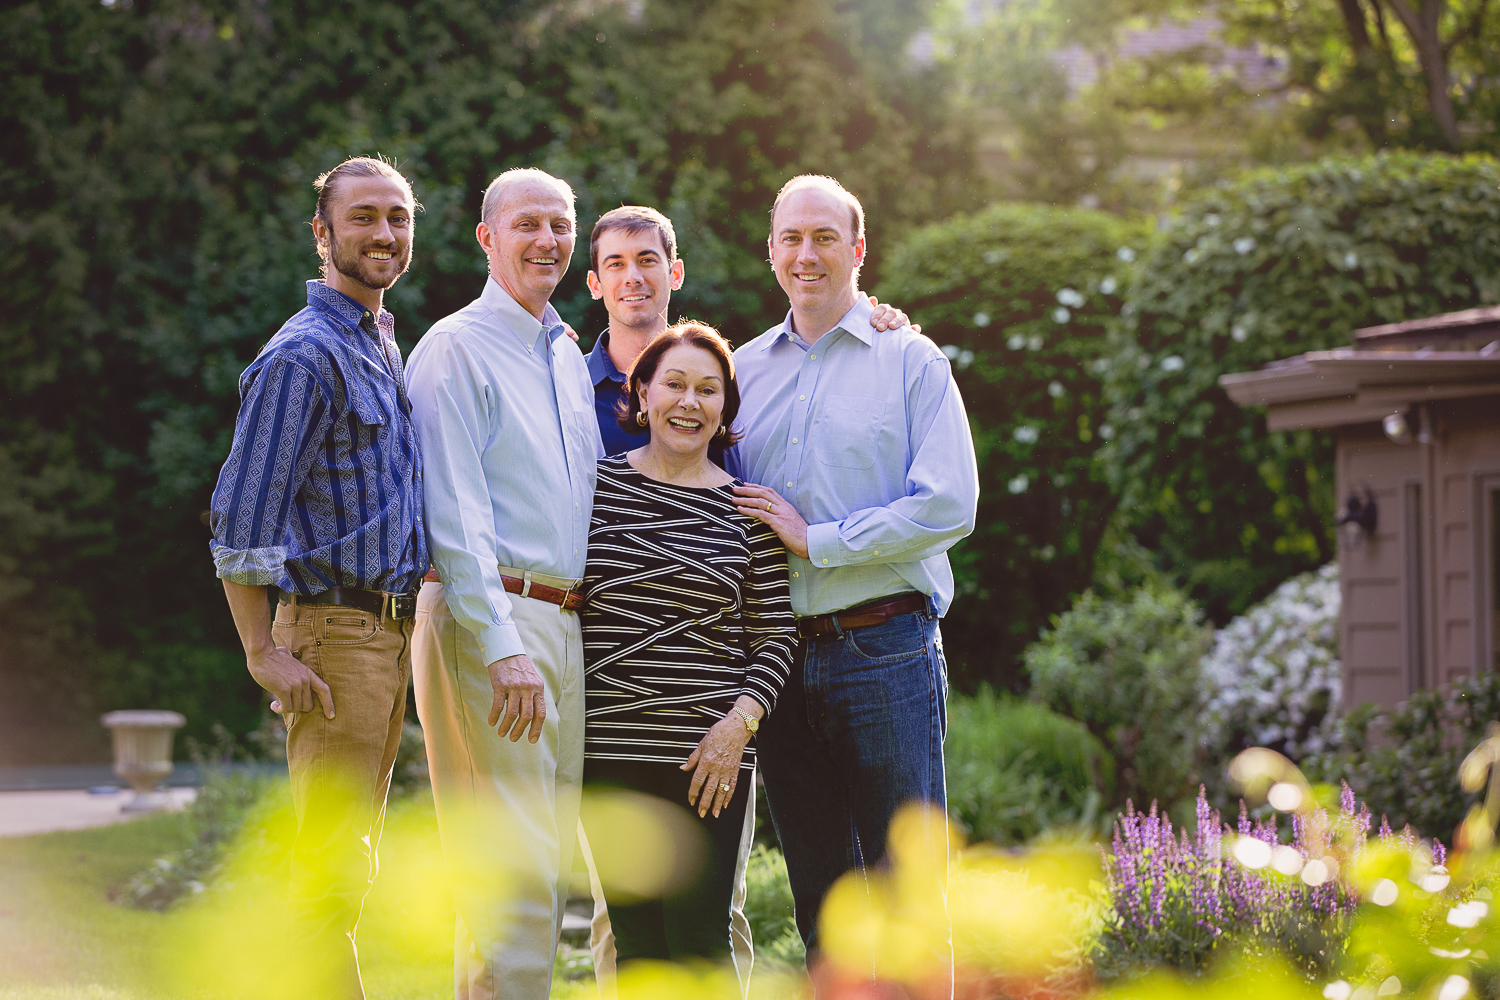 Outdoor portrait of a mature couple with their three grown sons